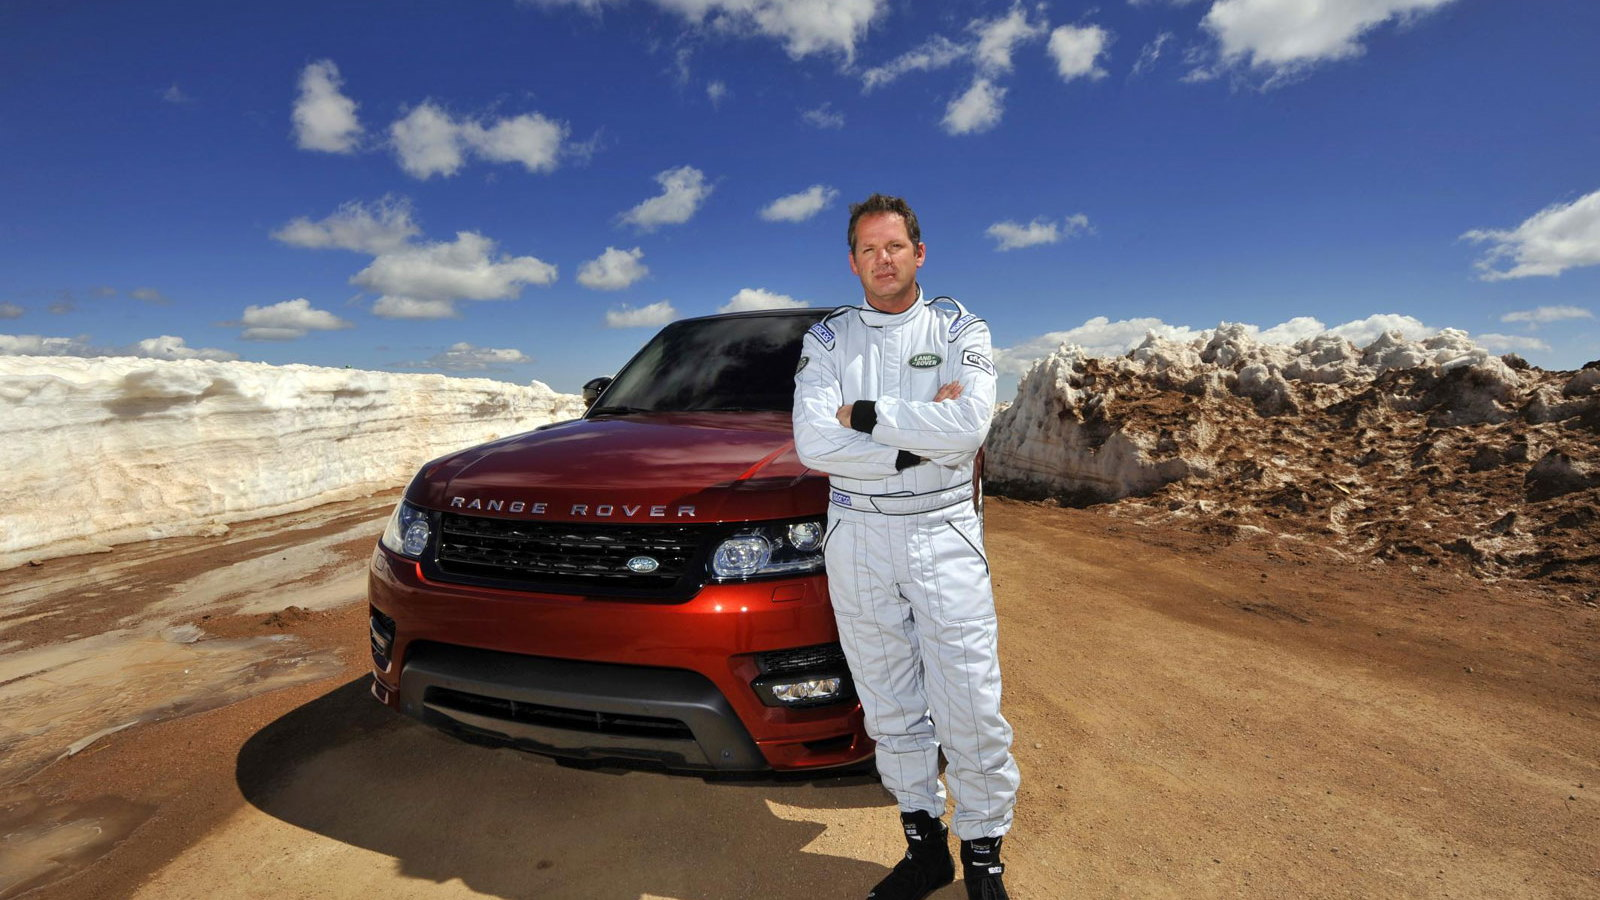 2014 Land Rover Range Rover Sport at Pikes Peak